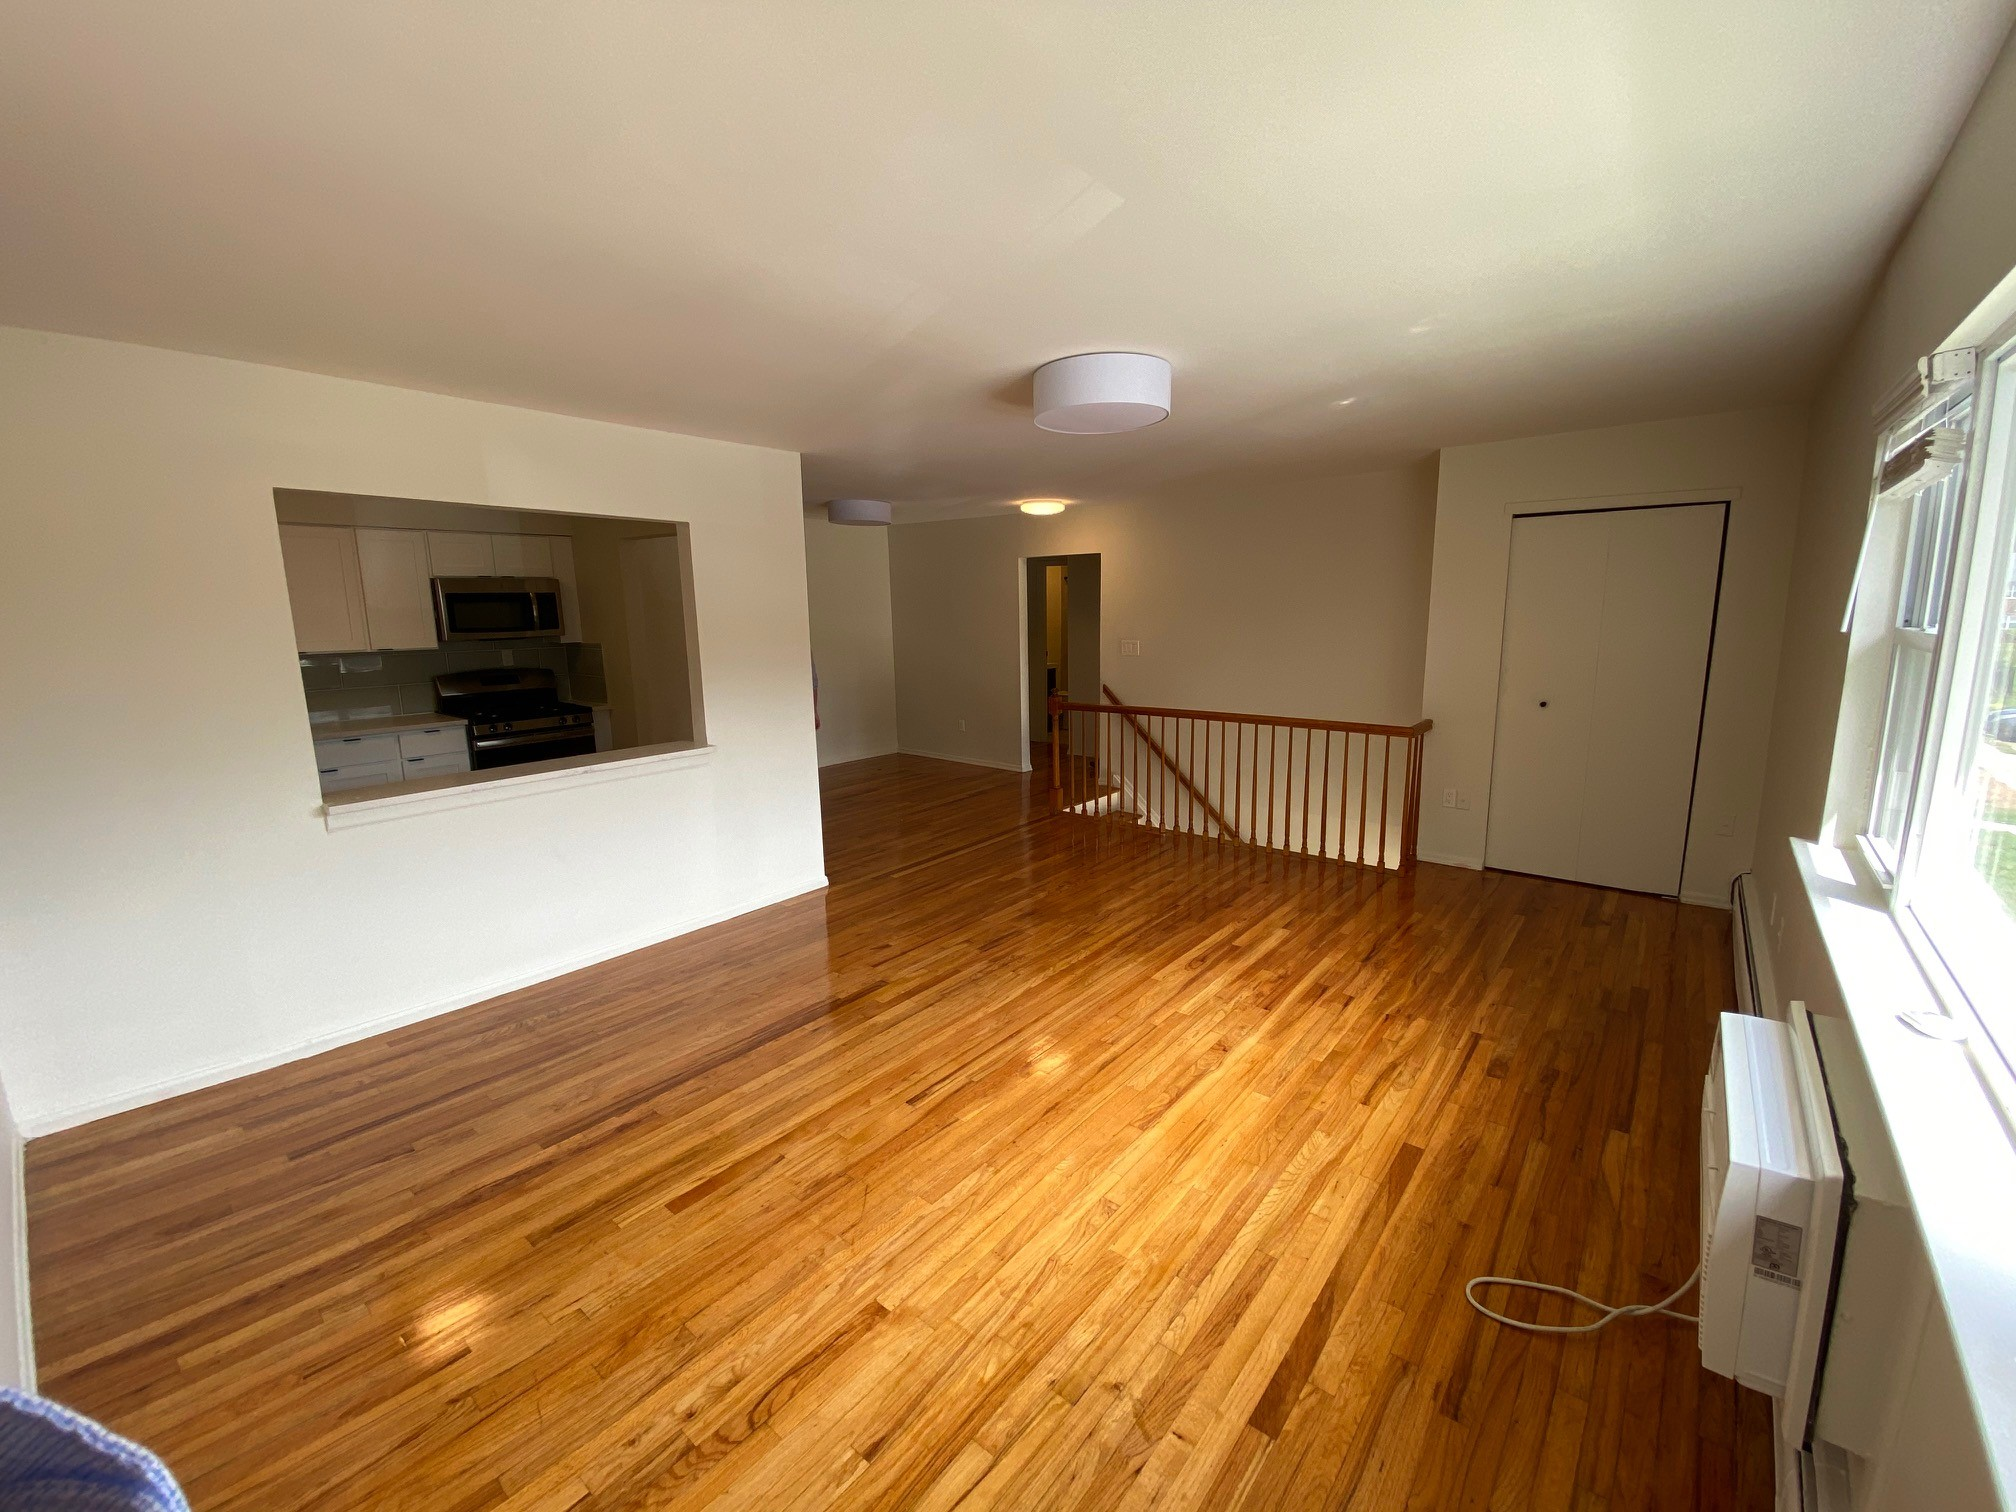 Open Floor Plans at Hampton Gardens Apartments in Middlesex, New Jersey